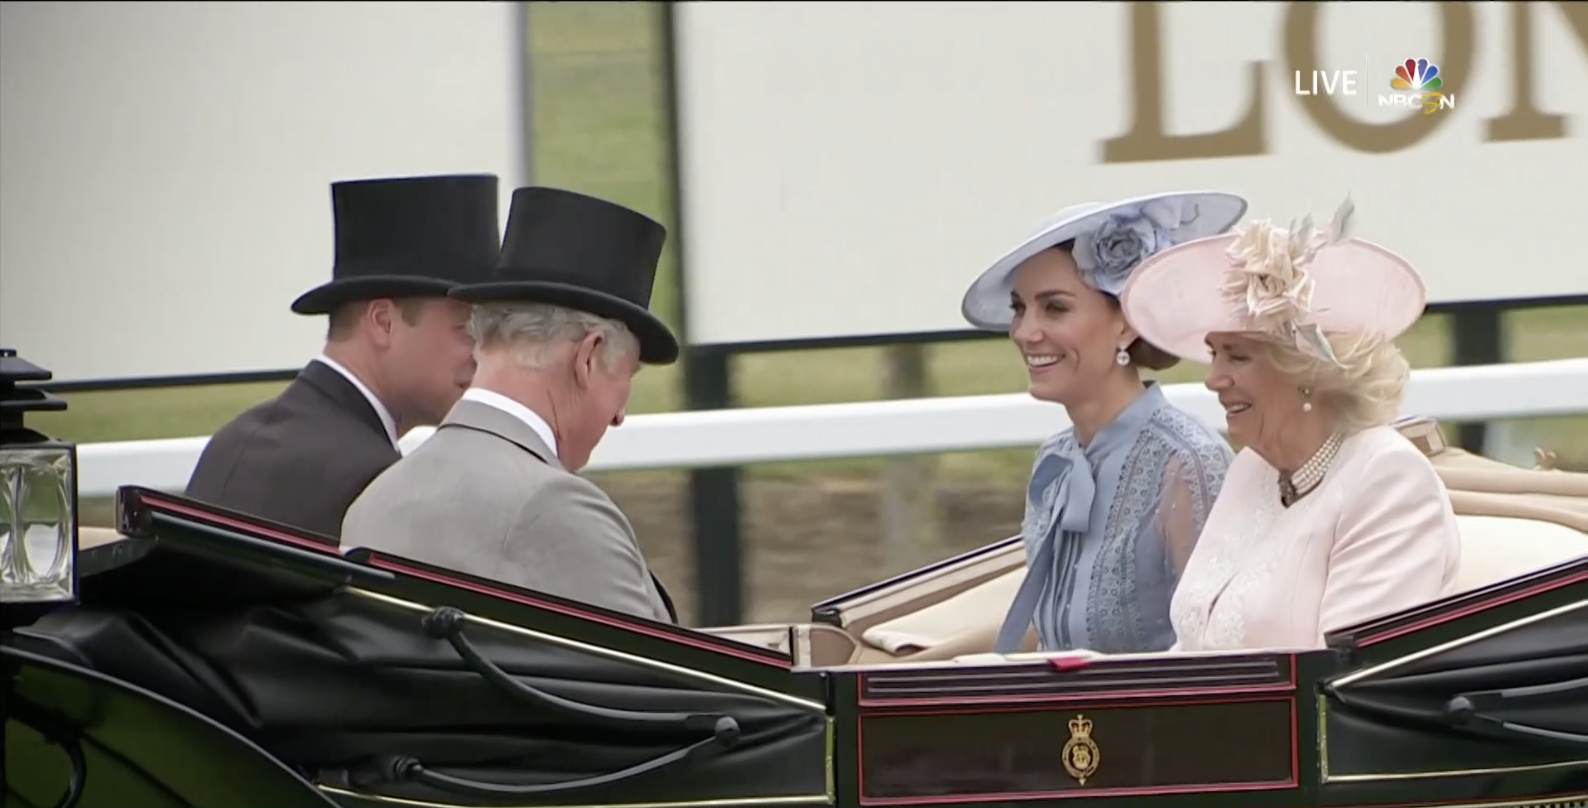 Kate Middleton Wears a Sheer Blue Elie Saab Dress to the 2019 Royal Ascot